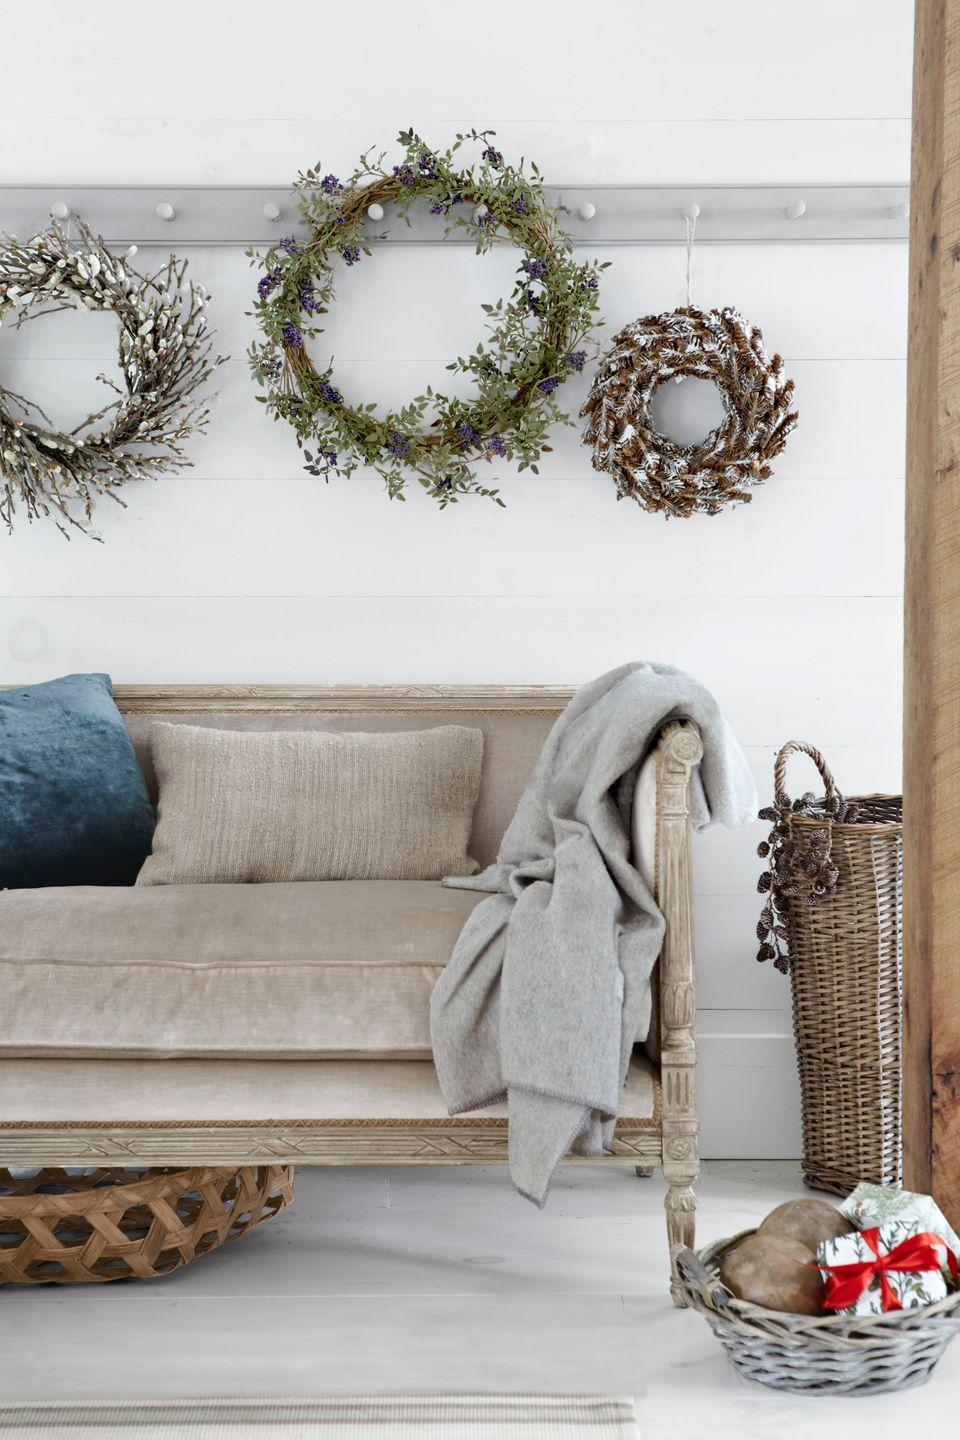 """<p>Go beyond evergreen boughs and bright-red bows—these wreaths are stunning in their simplicity.</p><p><a class=""""link rapid-noclick-resp"""" href=""""https://www.amazon.com/s/ref=nb_sb_noss_2?url=search-alias%3Dgarden&field-keywords=christmas+wreath&rh=n%3A1055398%2Ck%3Achristmas+wreath&tag=syn-yahoo-20&ascsubtag=%5Bartid%7C10050.g.1247%5Bsrc%7Cyahoo-us"""" rel=""""nofollow noopener"""" target=""""_blank"""" data-ylk=""""slk:SHOP CHRISTMAS WREATHS"""">SHOP CHRISTMAS WREATHS</a> </p>"""